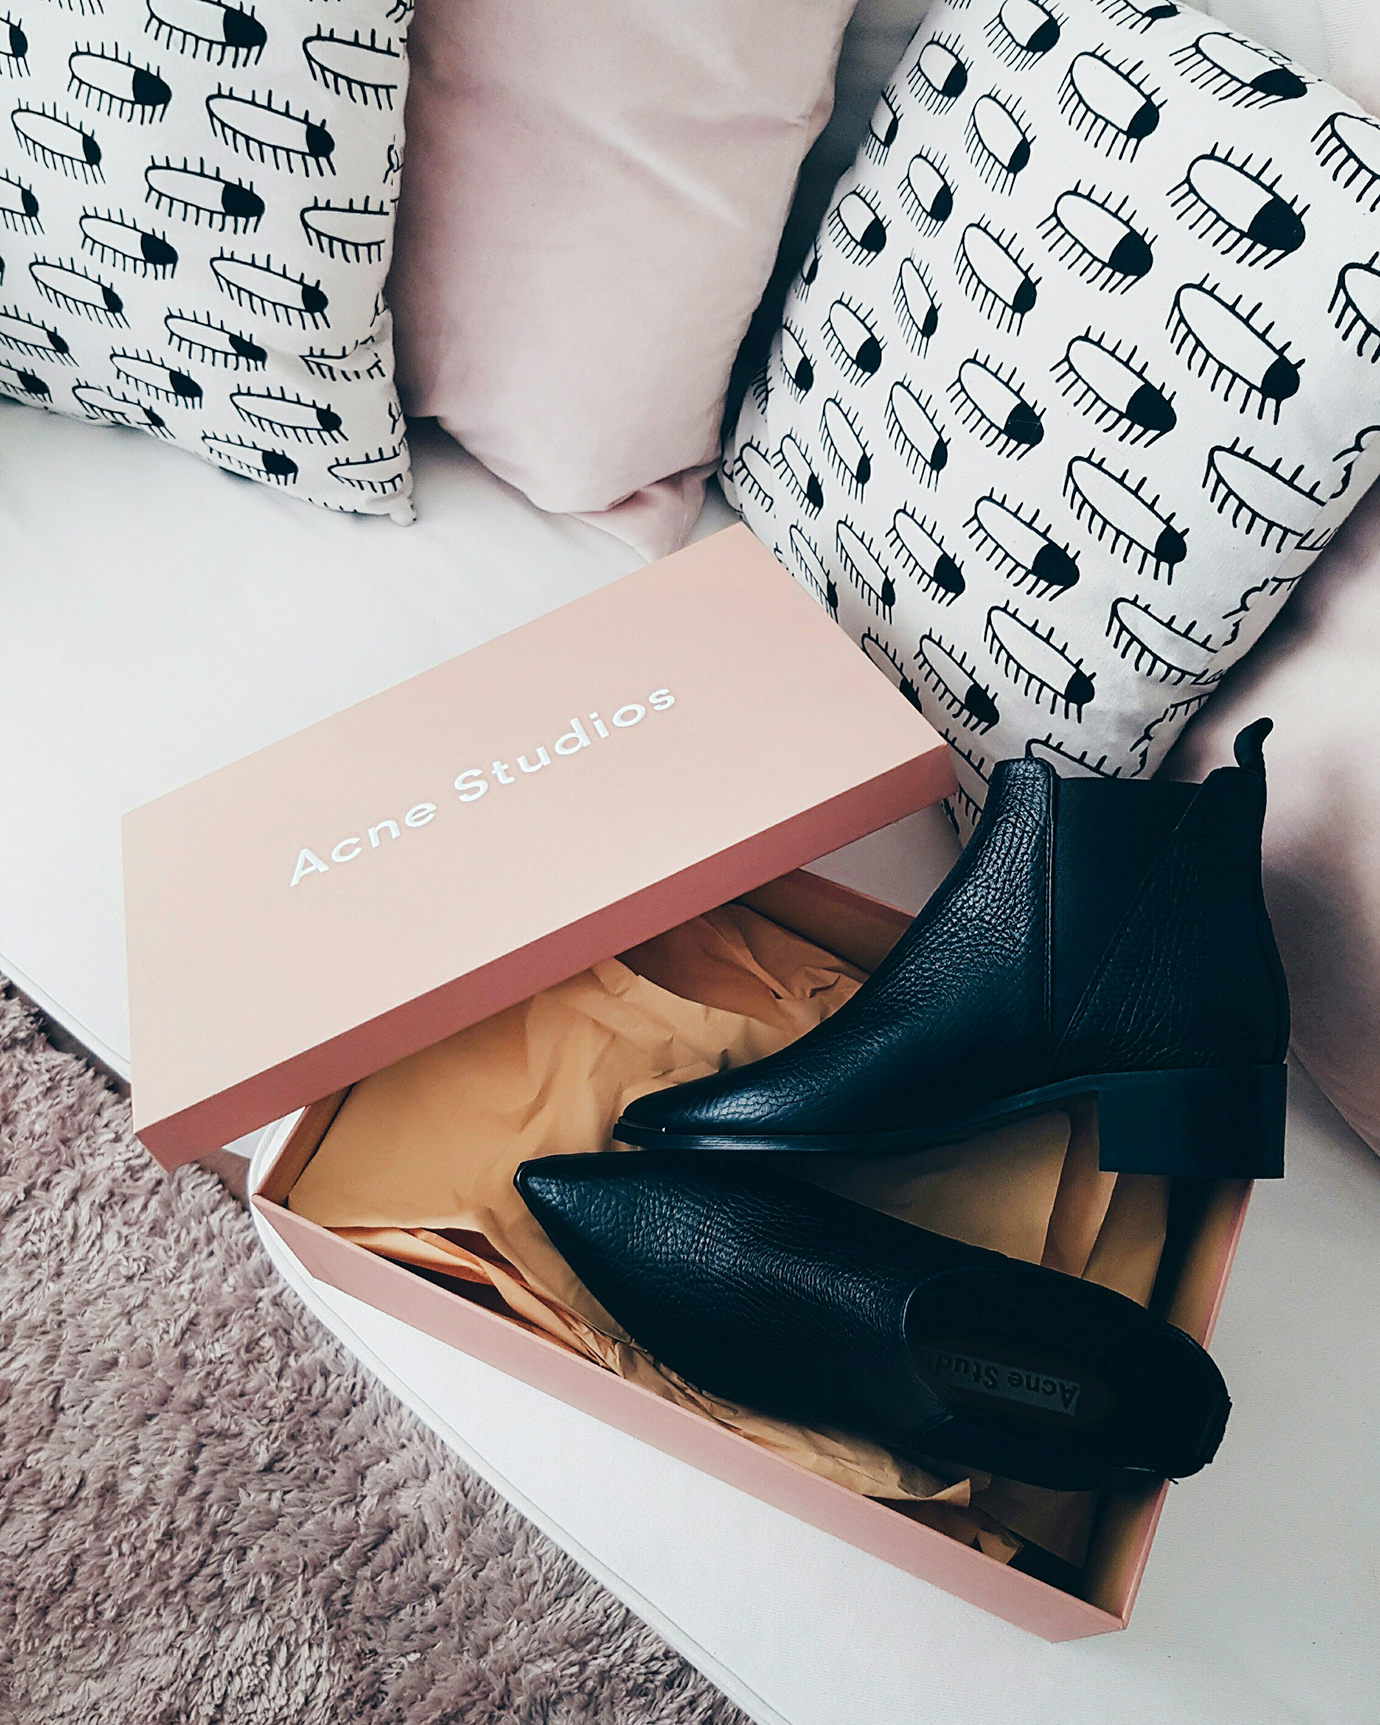 7things_44_acne_jensen_boots